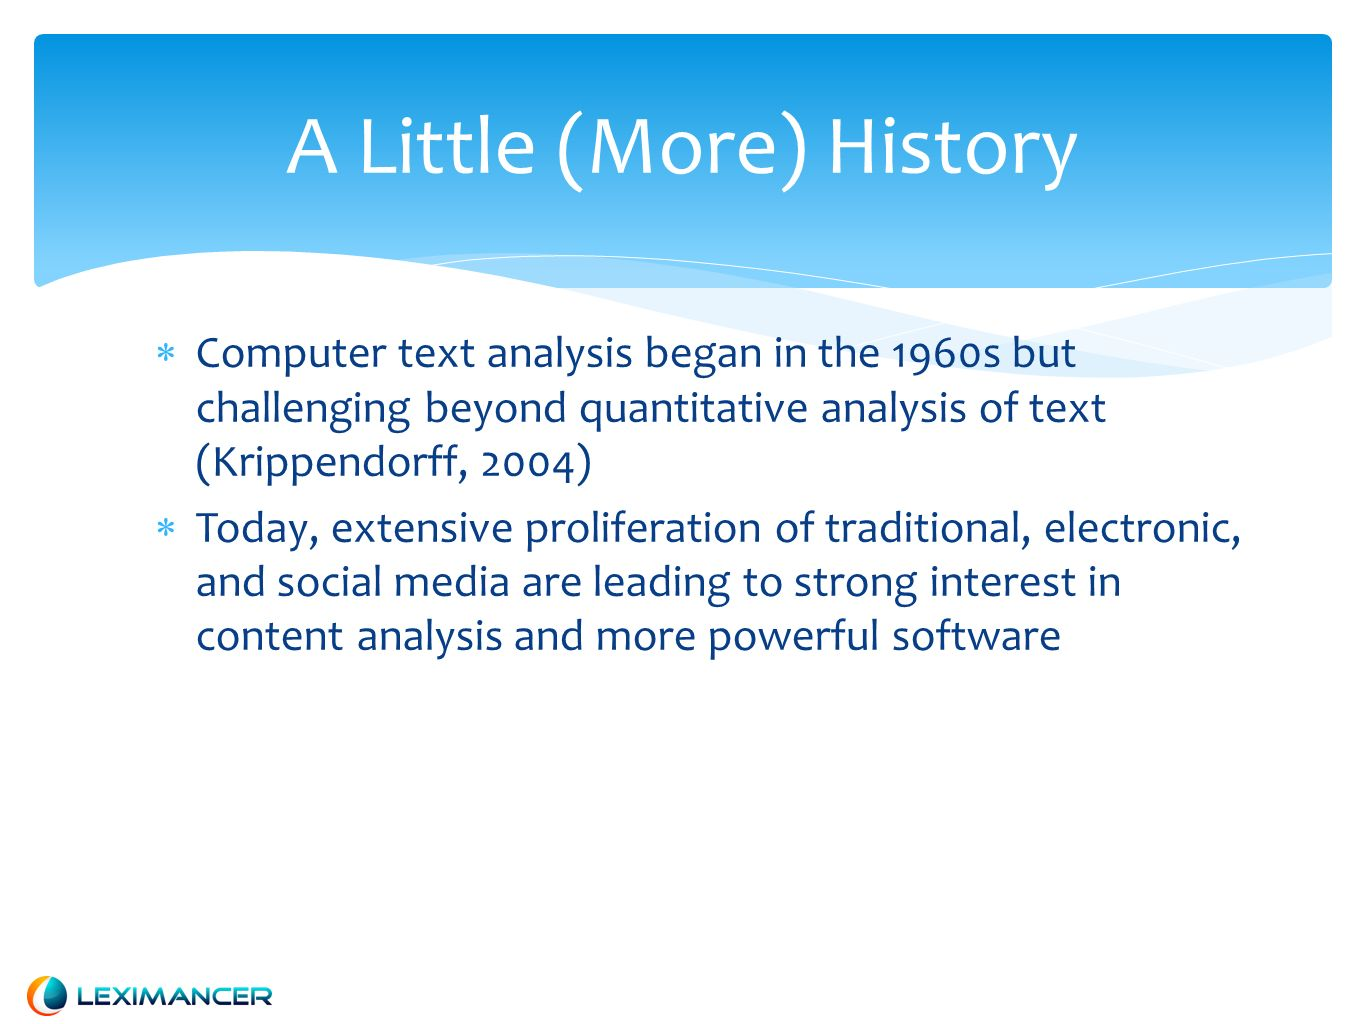 A Little (More) History Computer text analysis began in the 1960s but challenging beyond quantitative analysis of text (Krippendorff, 2004) Today, extensive proliferation of traditional, electronic, and social media are leading to strong interest in content analysis and more powerful software